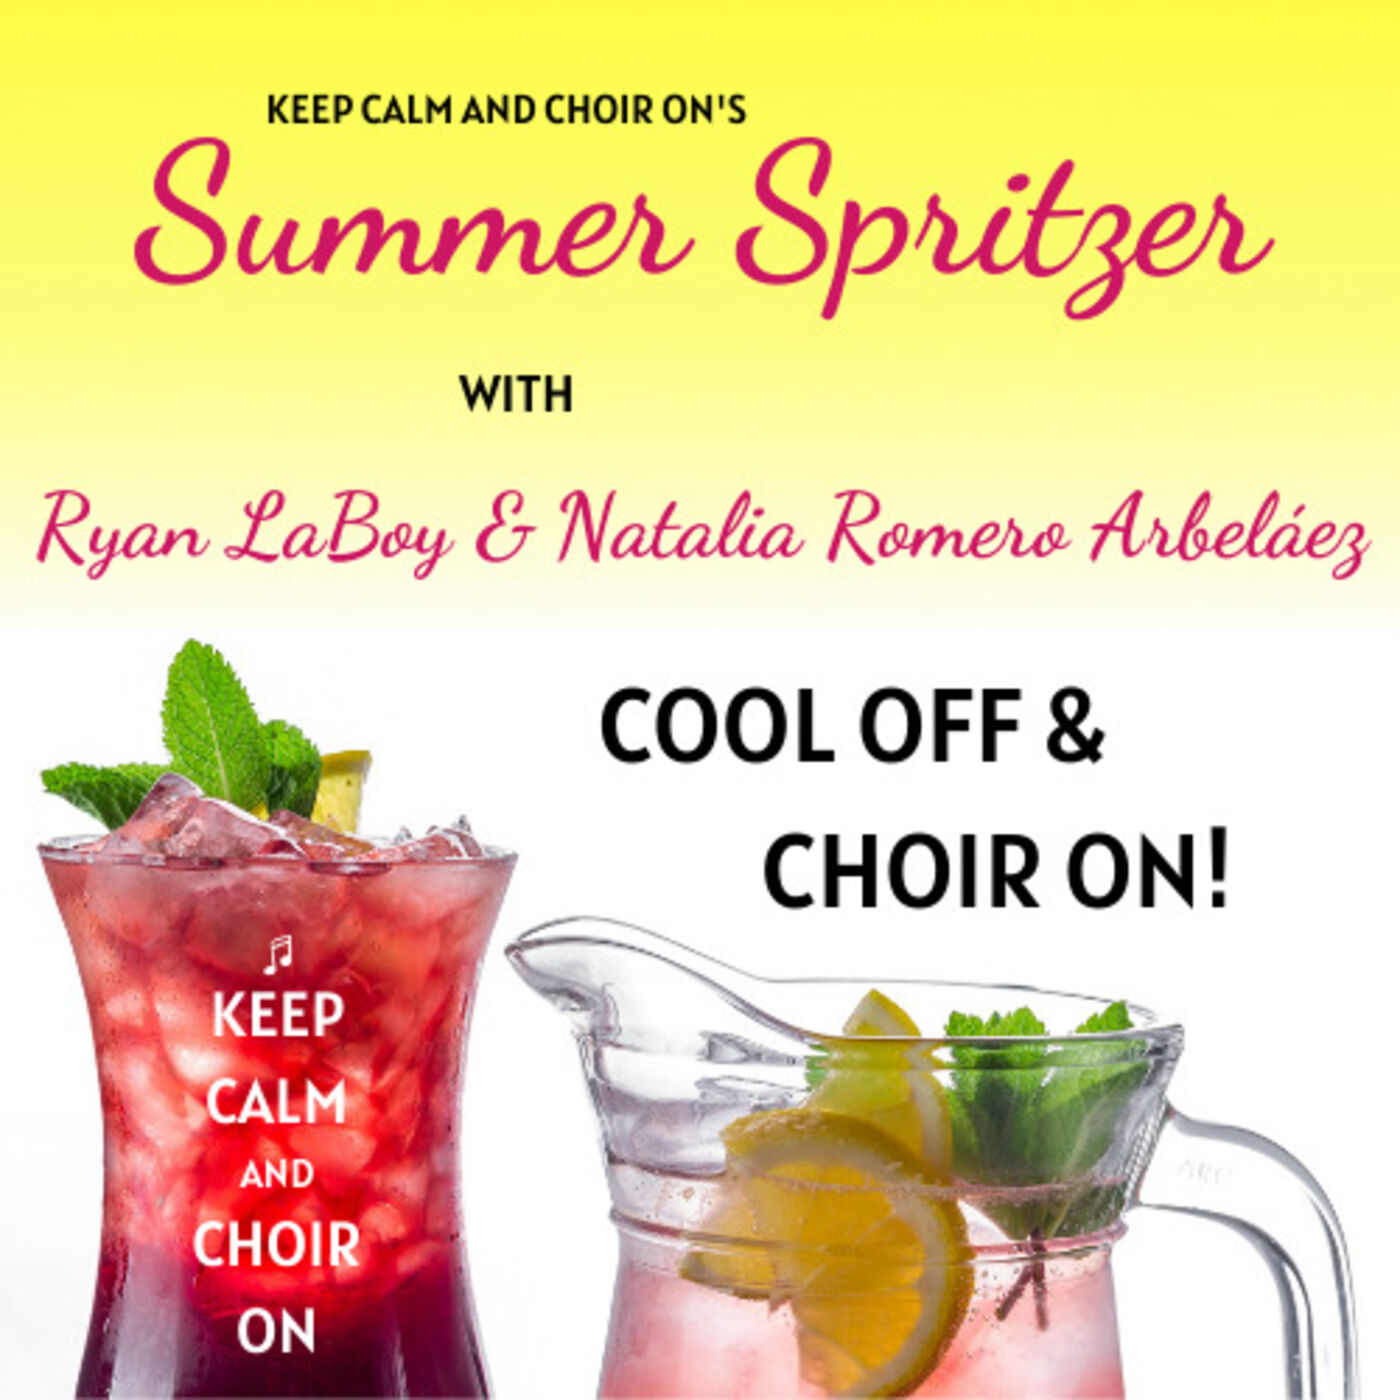 Keep Calm and Choir On's Summer Spritzer Trailer